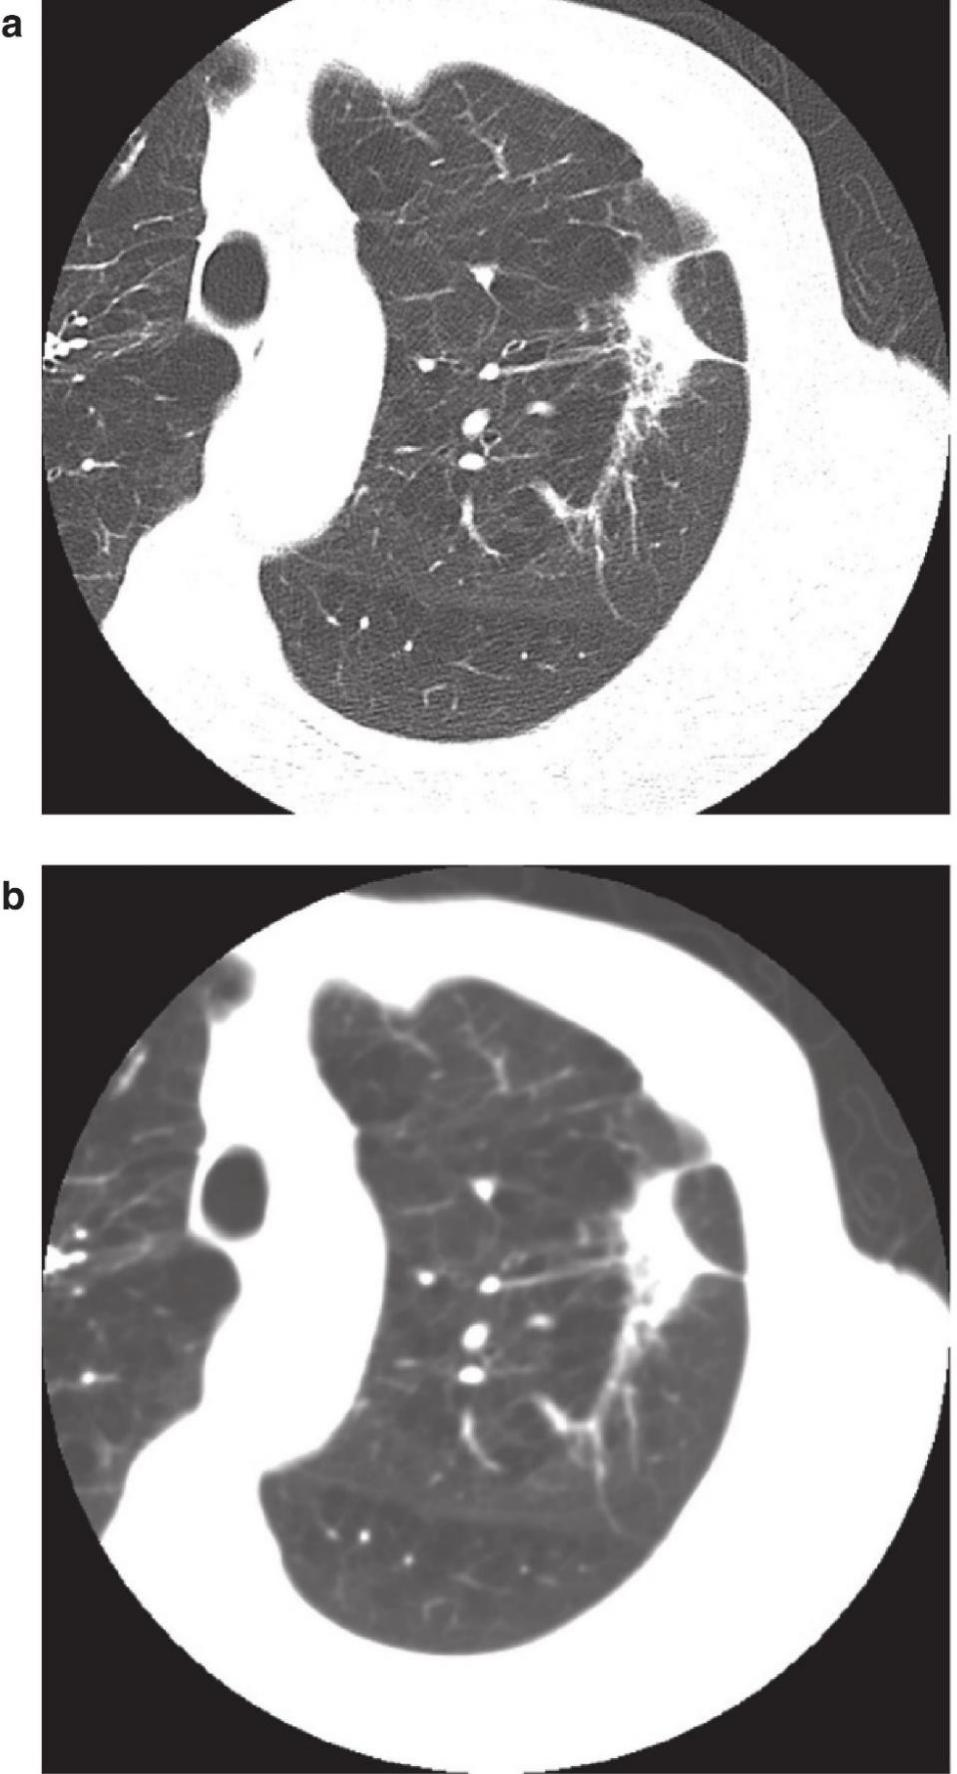 C:\Users\Administrator\Desktop\Chest X-Ray in Clinical Practice _ap_179.jpg